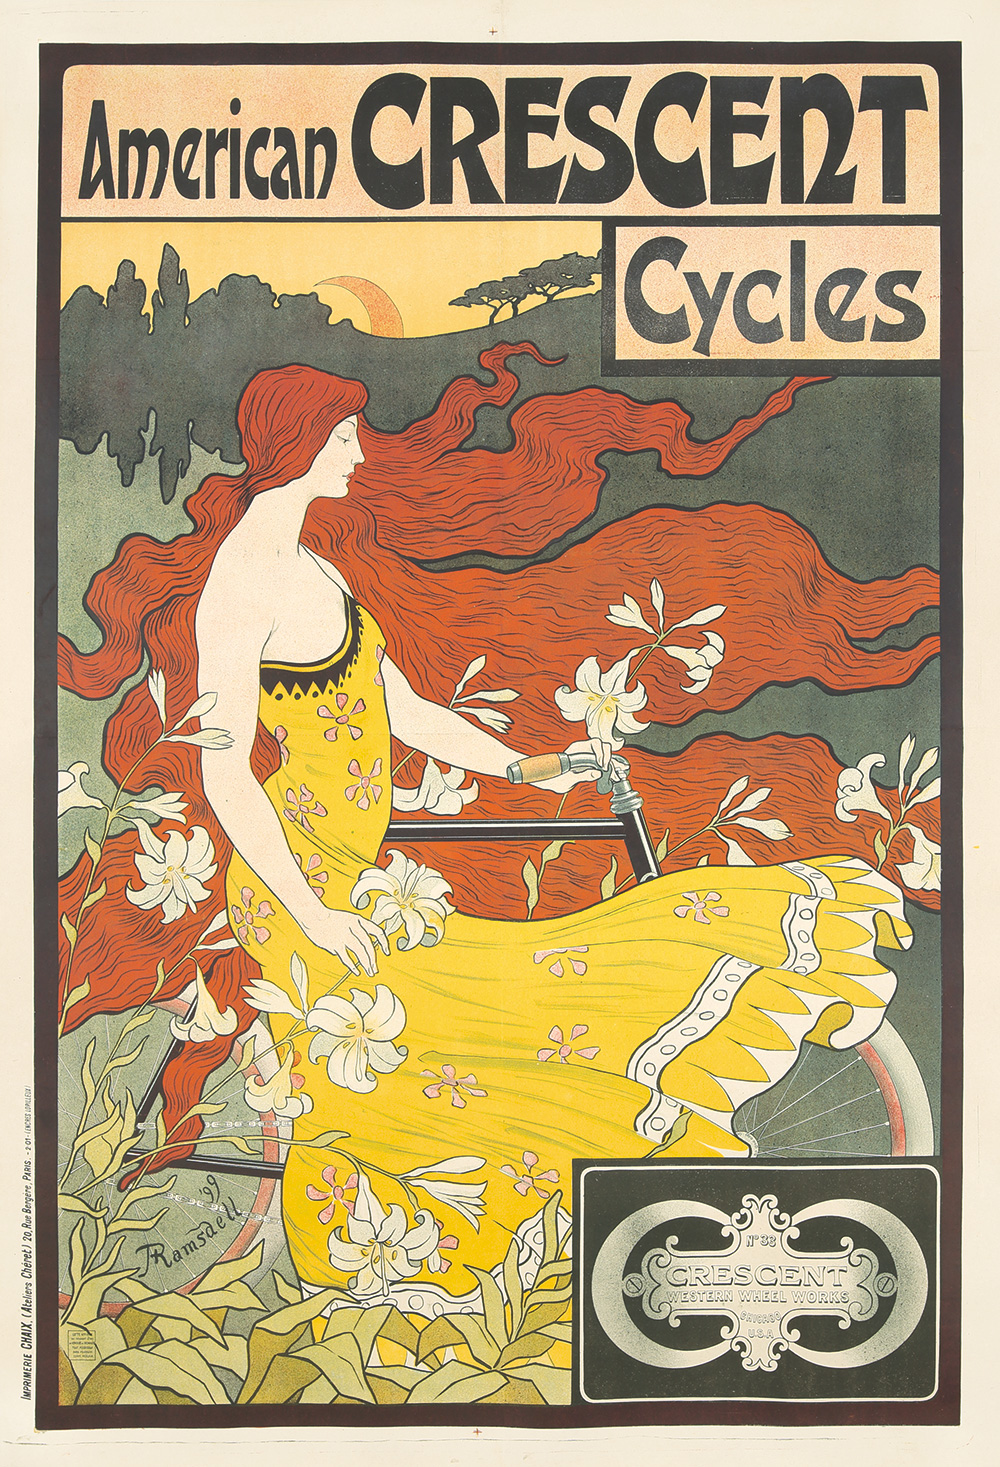 9. American Crescent Cycles. 1899.